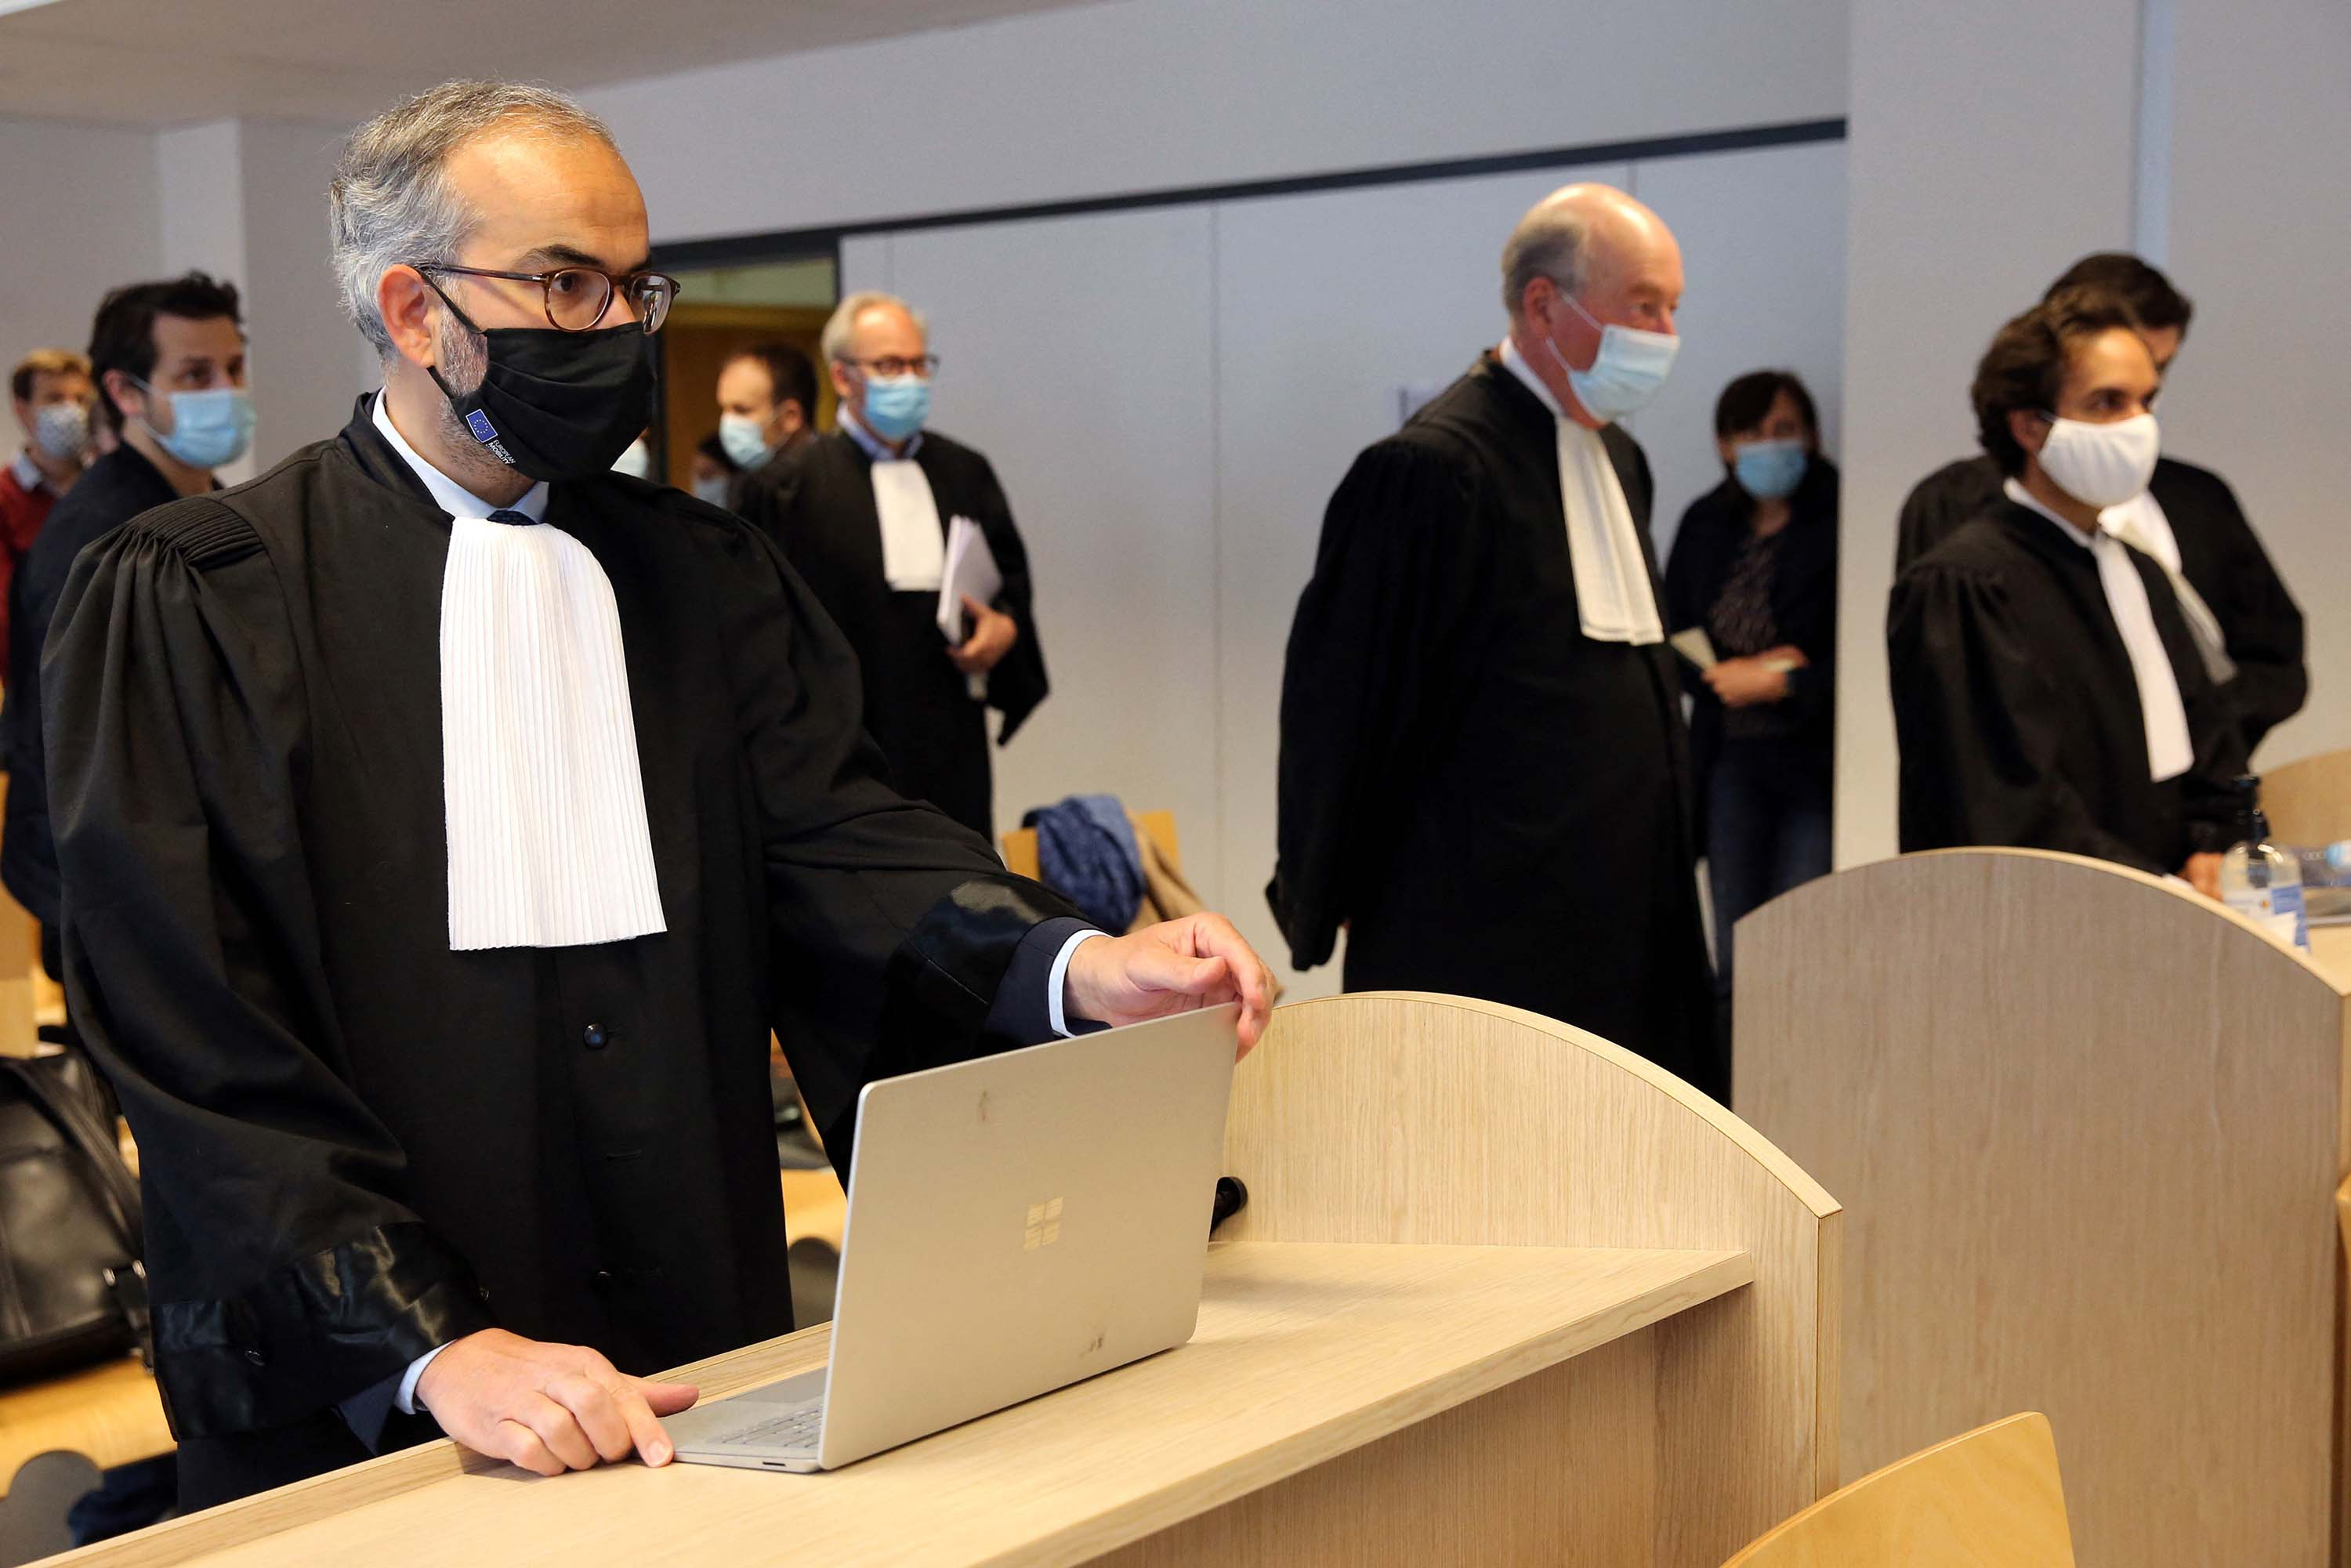 Hakim Boularbah, lawyer for the Swedish-British AstraZeneca pharmaceutical company, left, and lawyers of the European Commission attend the hearing concerning the legal action by the European Commission against AstraZeneca at a Brussels courthouse, on April 28.